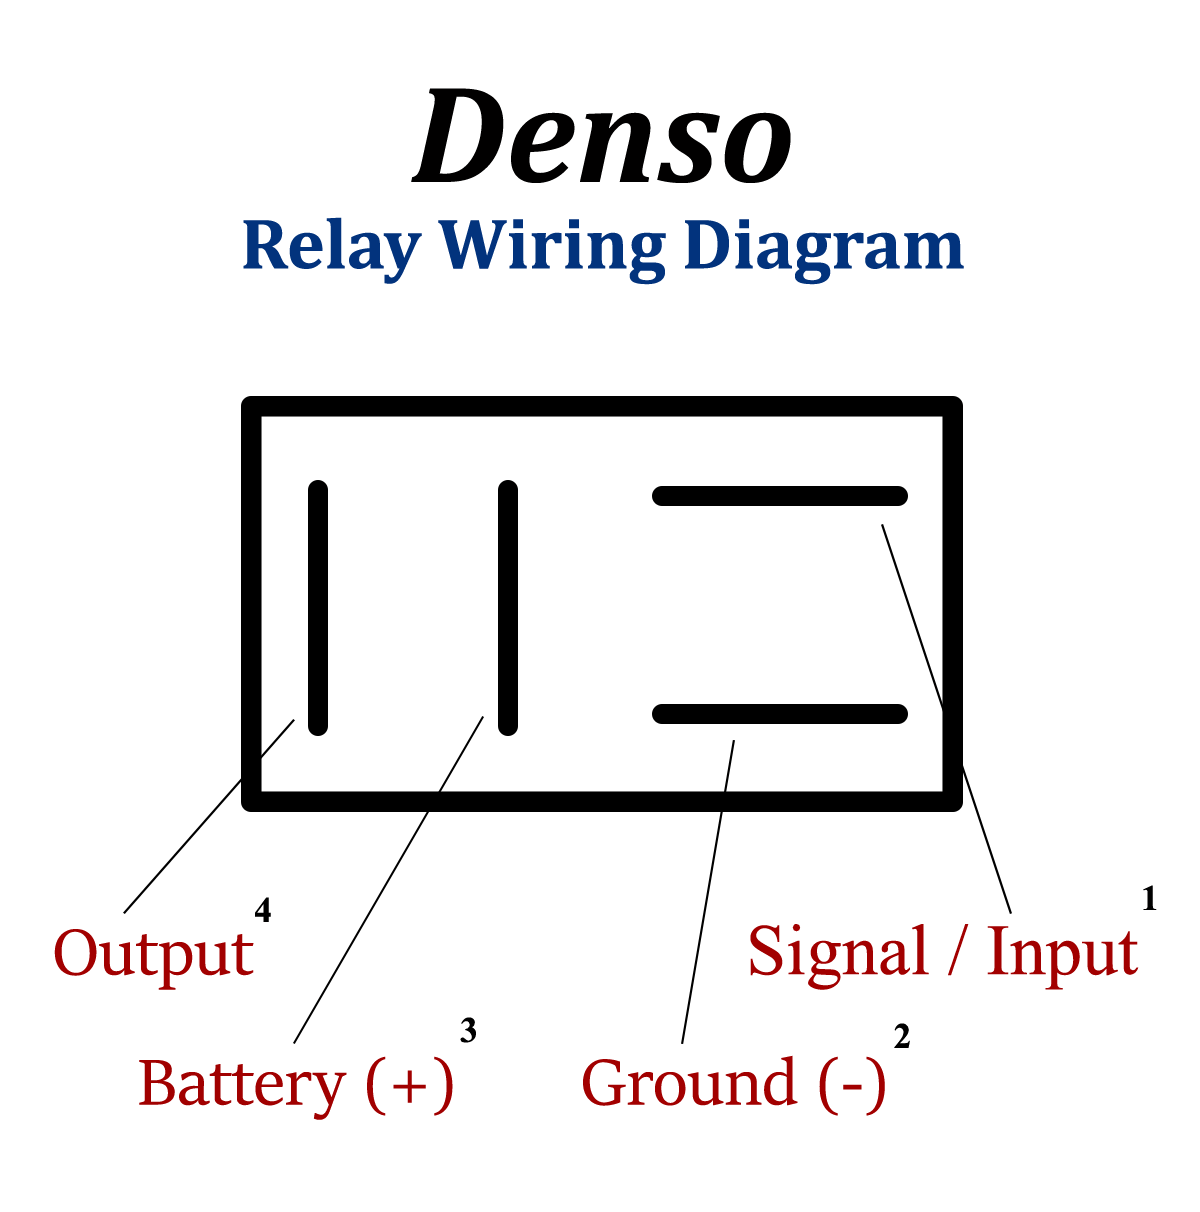 Denso Heater Wiring Diagram Manual Comfortable Oxygen Sensor Pictures Inspiration Racing Alternator 3